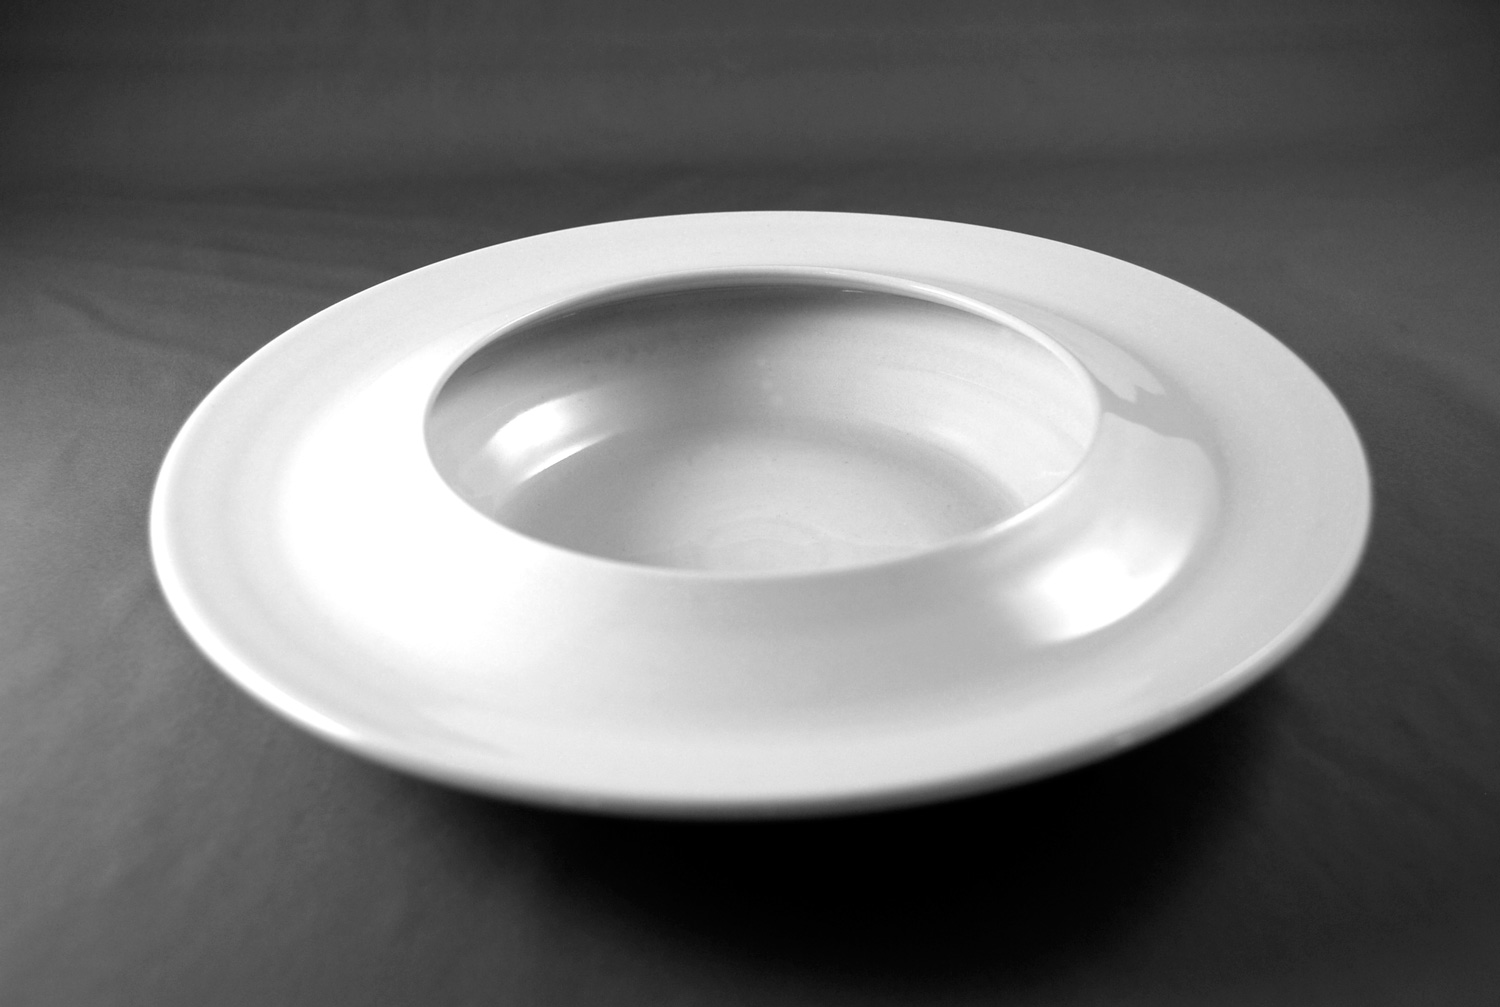 Bowl-plate for pastas front view